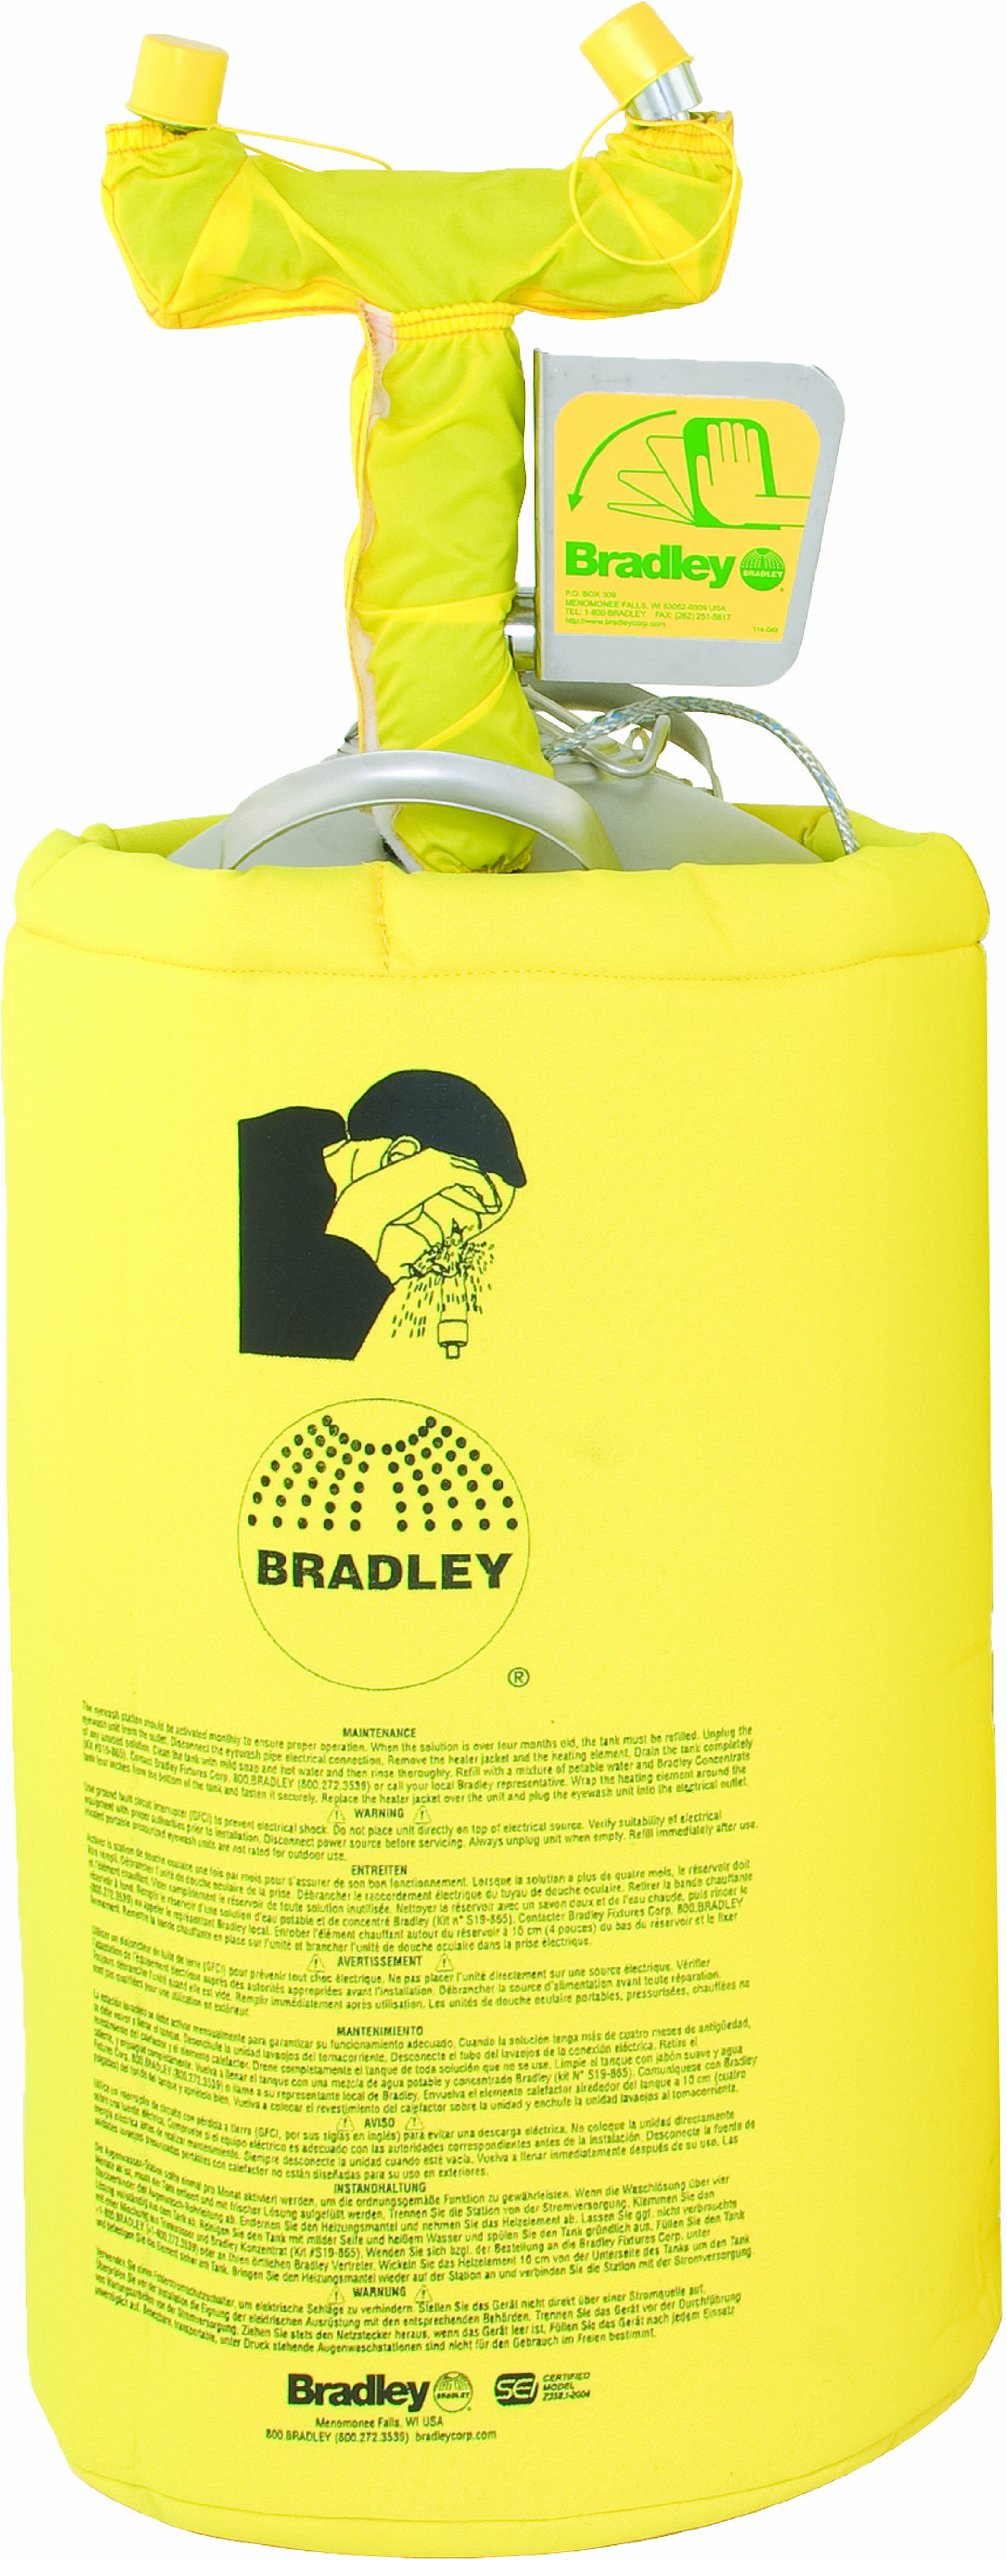 Bradley S19-690H 10 Gallon Safety Heated Portable Pressurized Eye/Face Wash Unit with Drench Hose, 14'' Width x 37-5/8'' Height